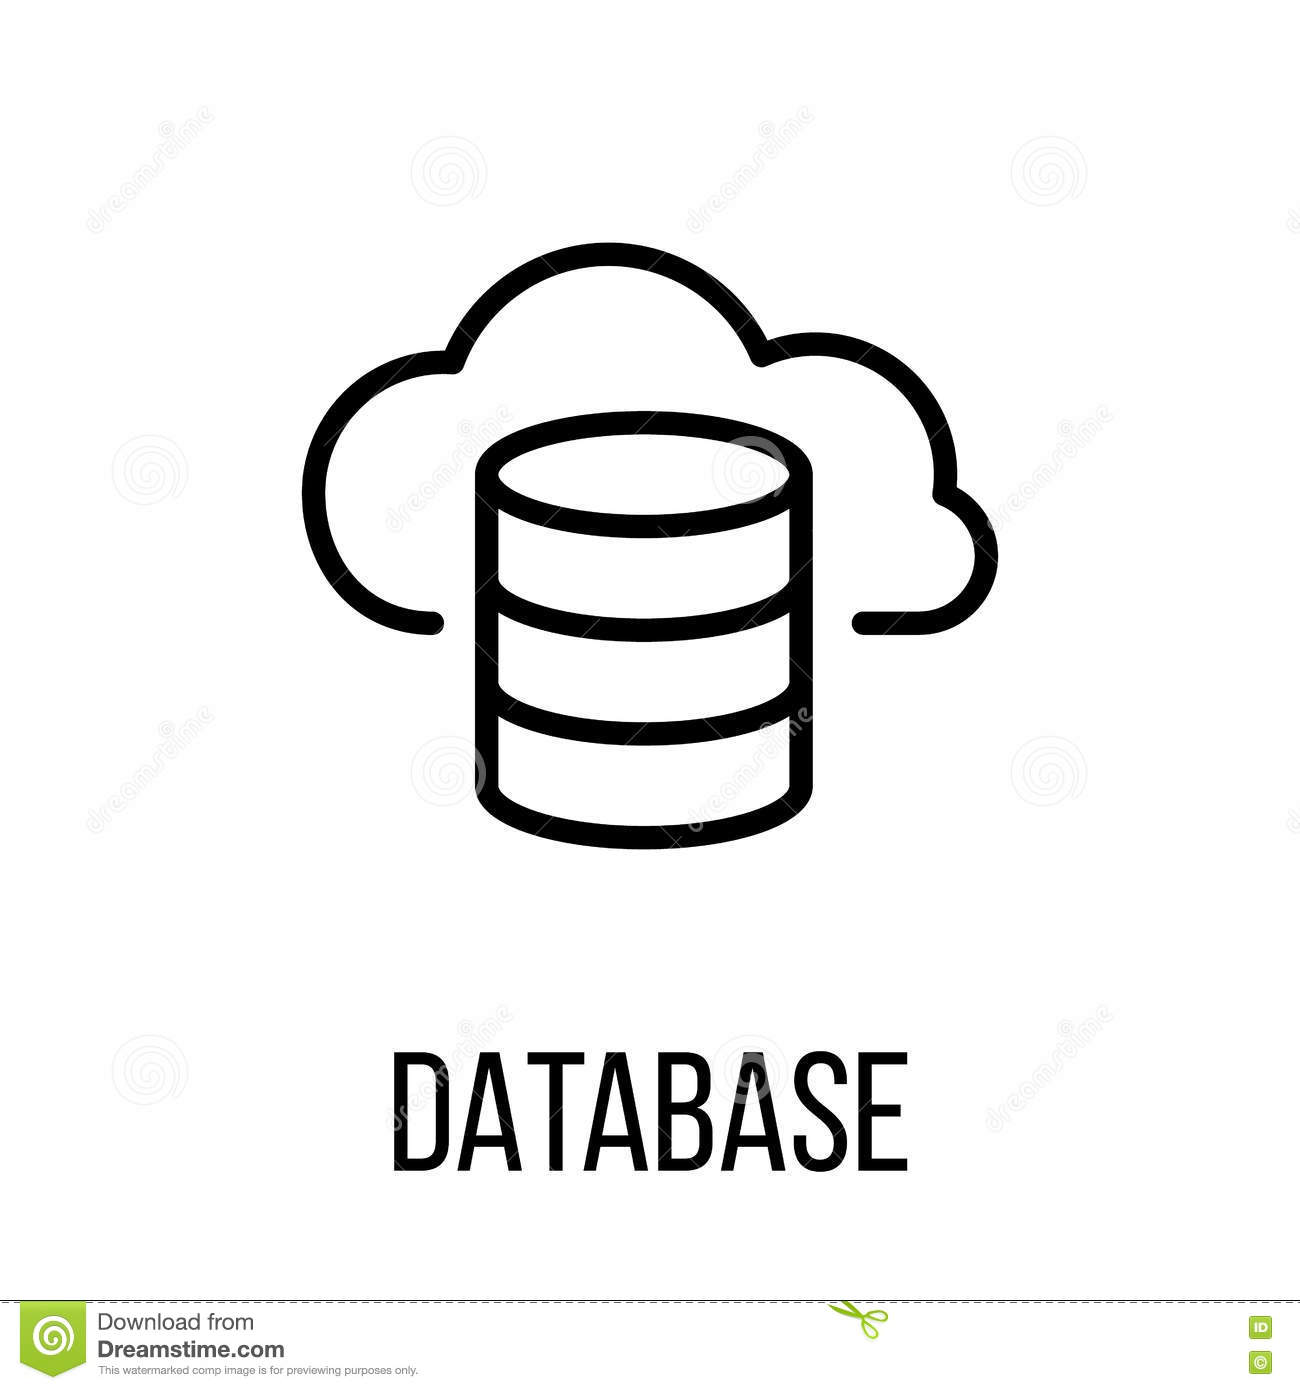 modern database Introduction widespread programming language support in the application development community, the function of database technology is well understood.